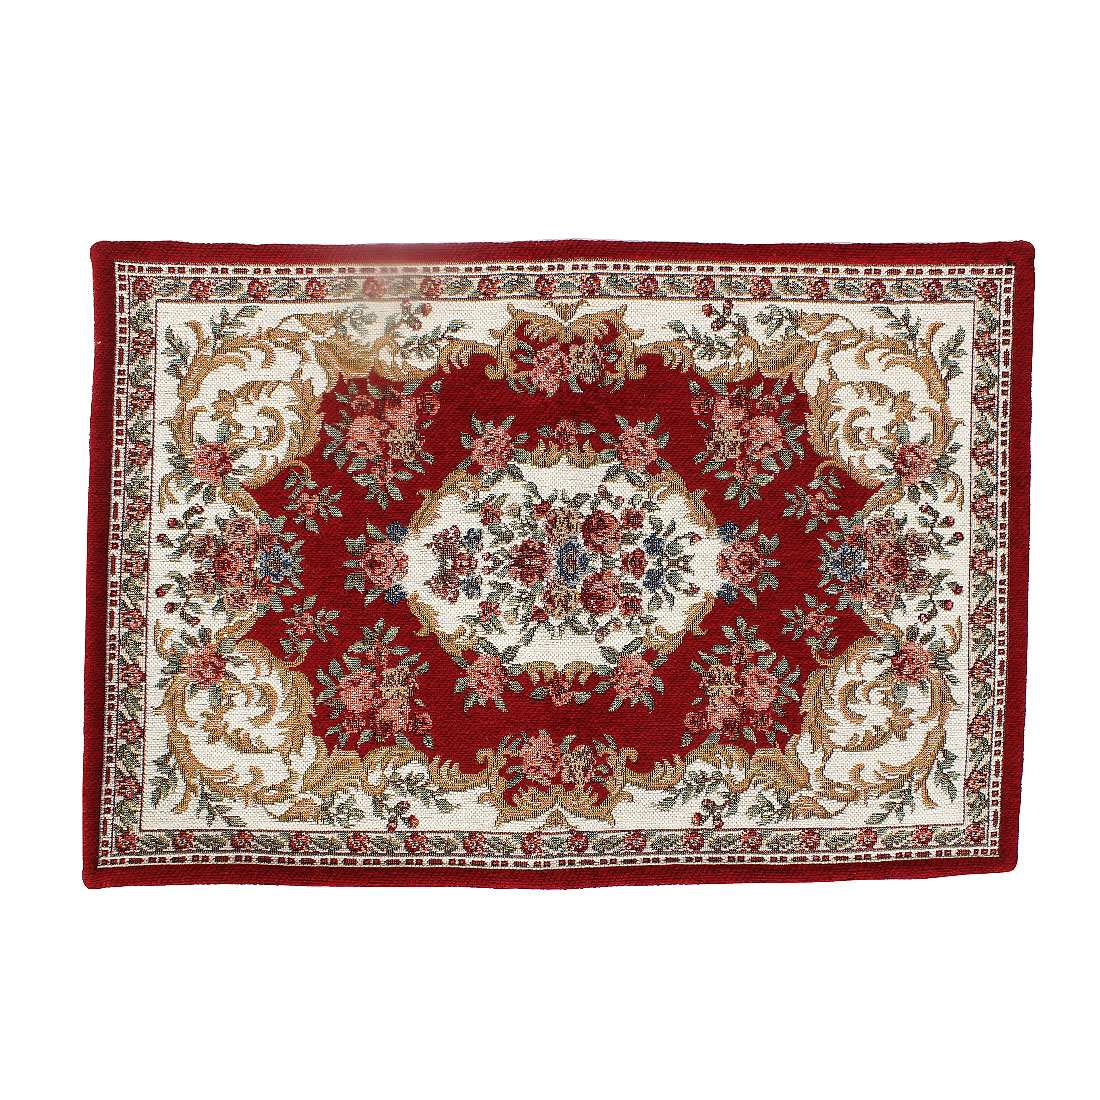 Home Flower Pattern Rectangle Shaped Floor Mat Area Rug Carpet Red 60x40cm